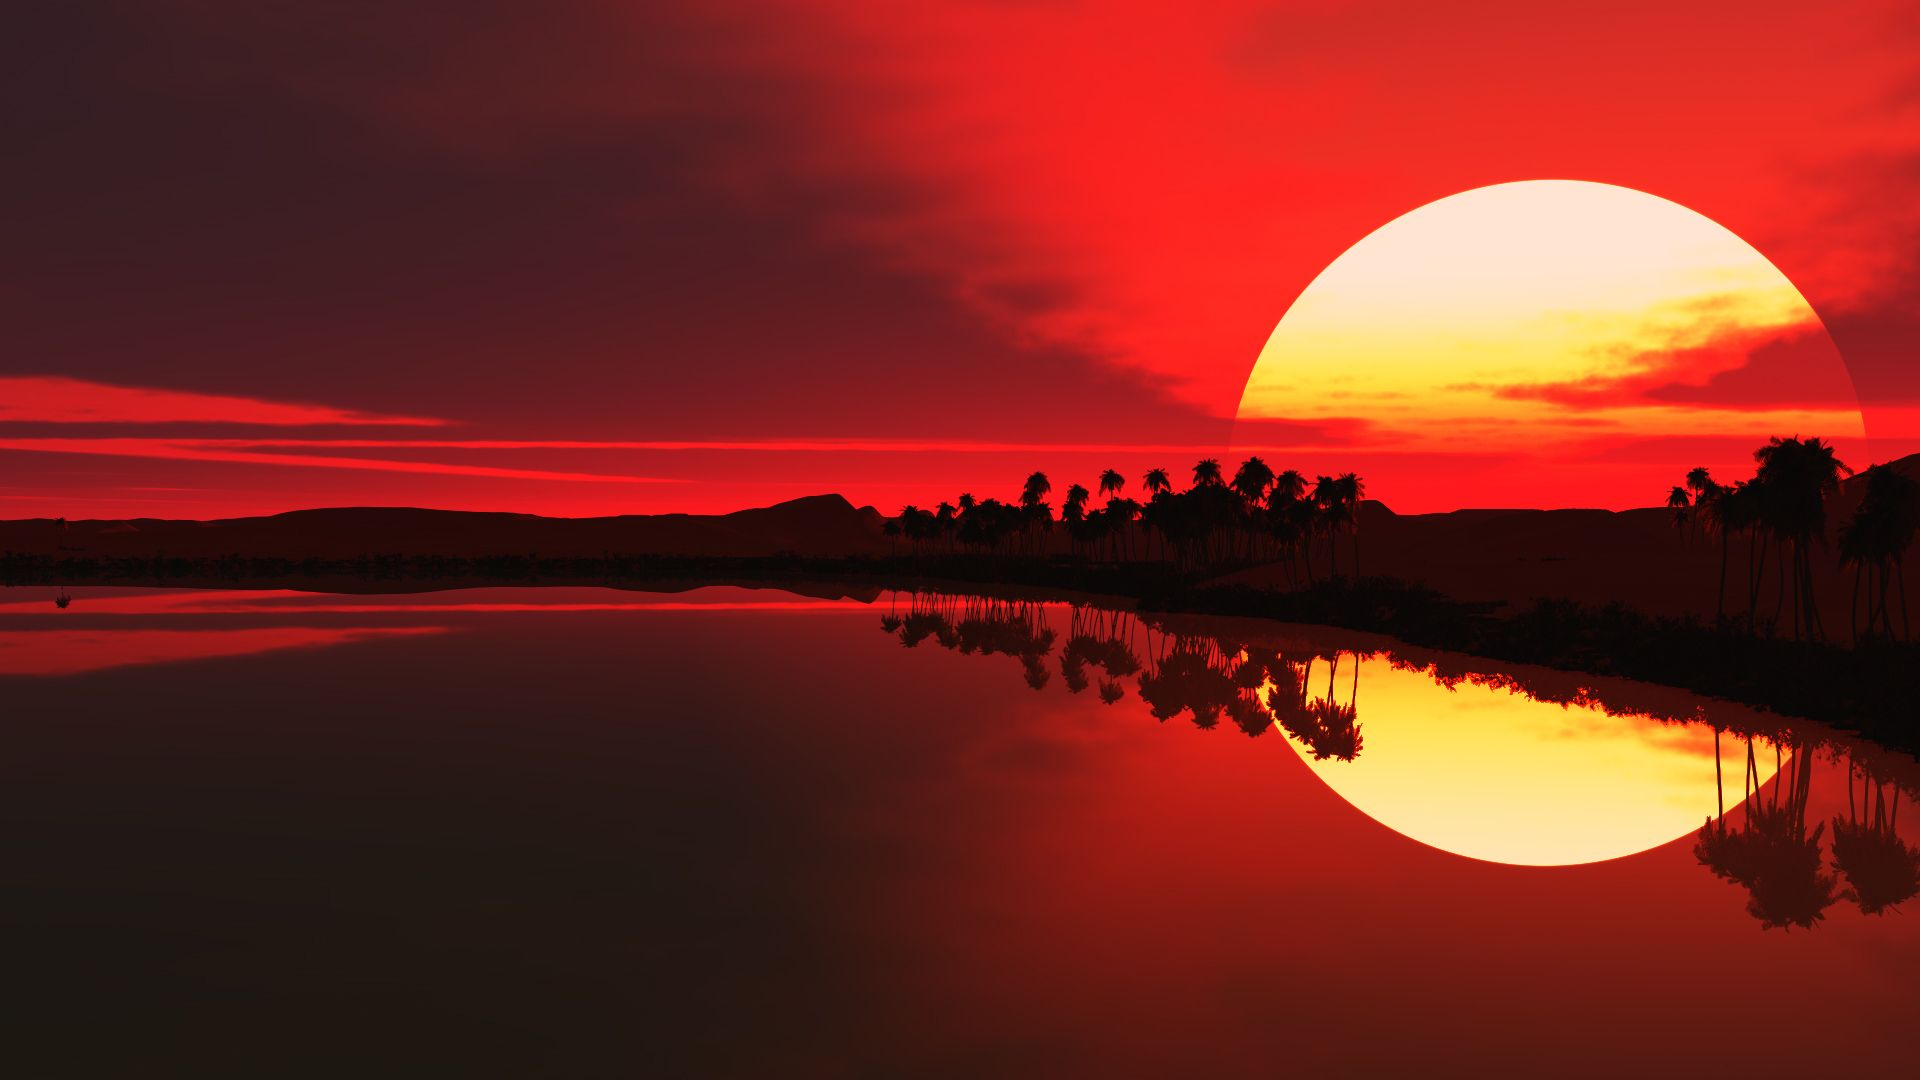 Top IPad App SkipBo Magmic Inc By Magmic Inc - 12 destinations to see the most beautiful sunsets ever